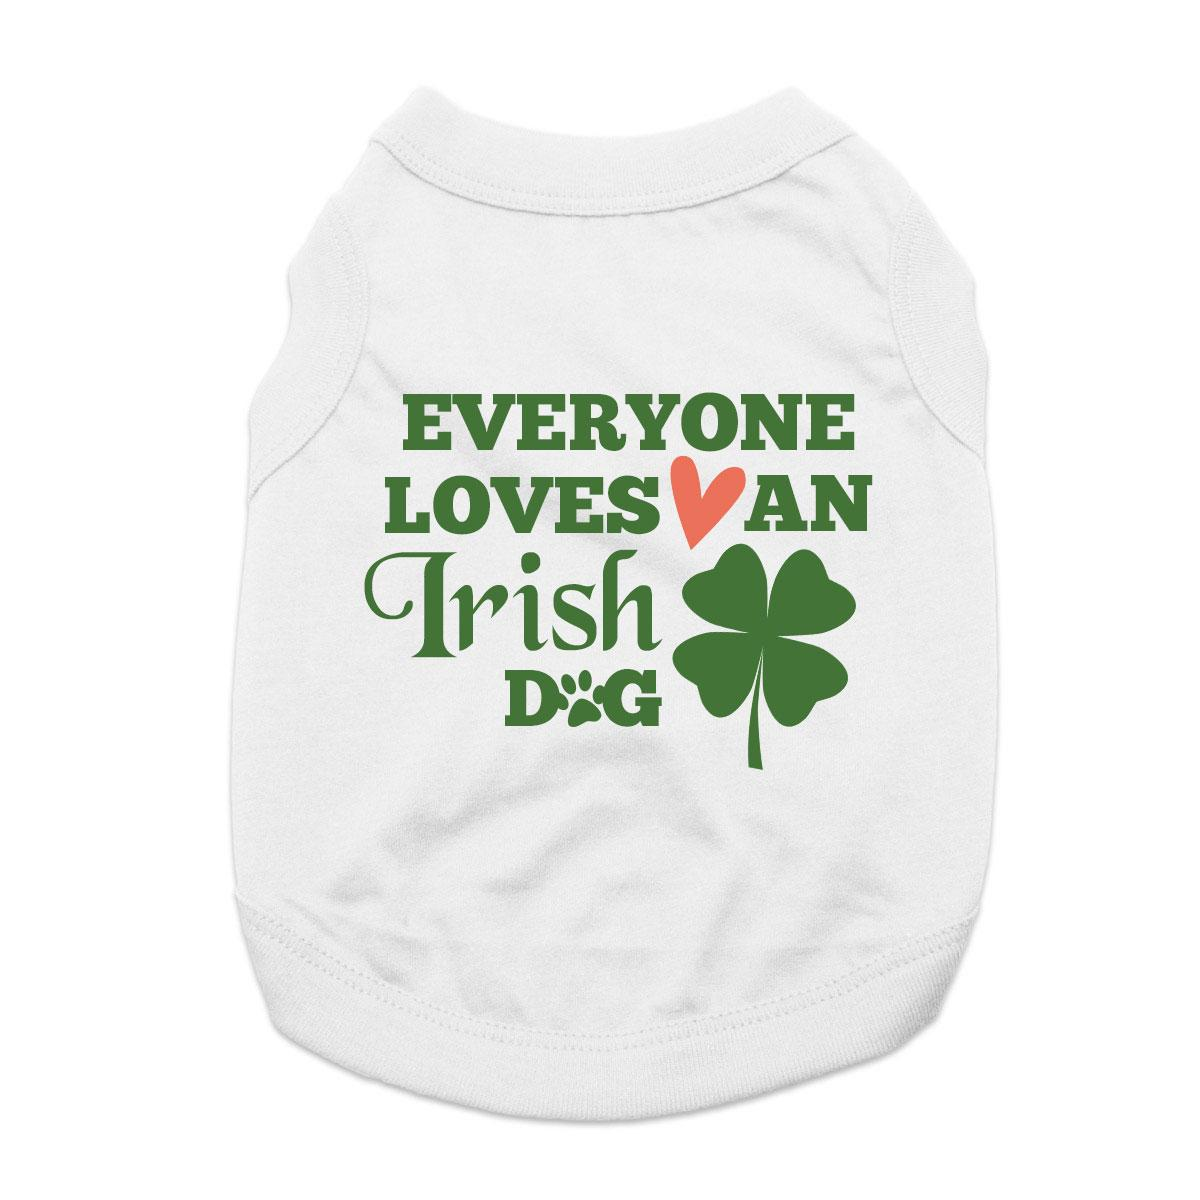 Everyone Loves an Irish Dog Shirt - White